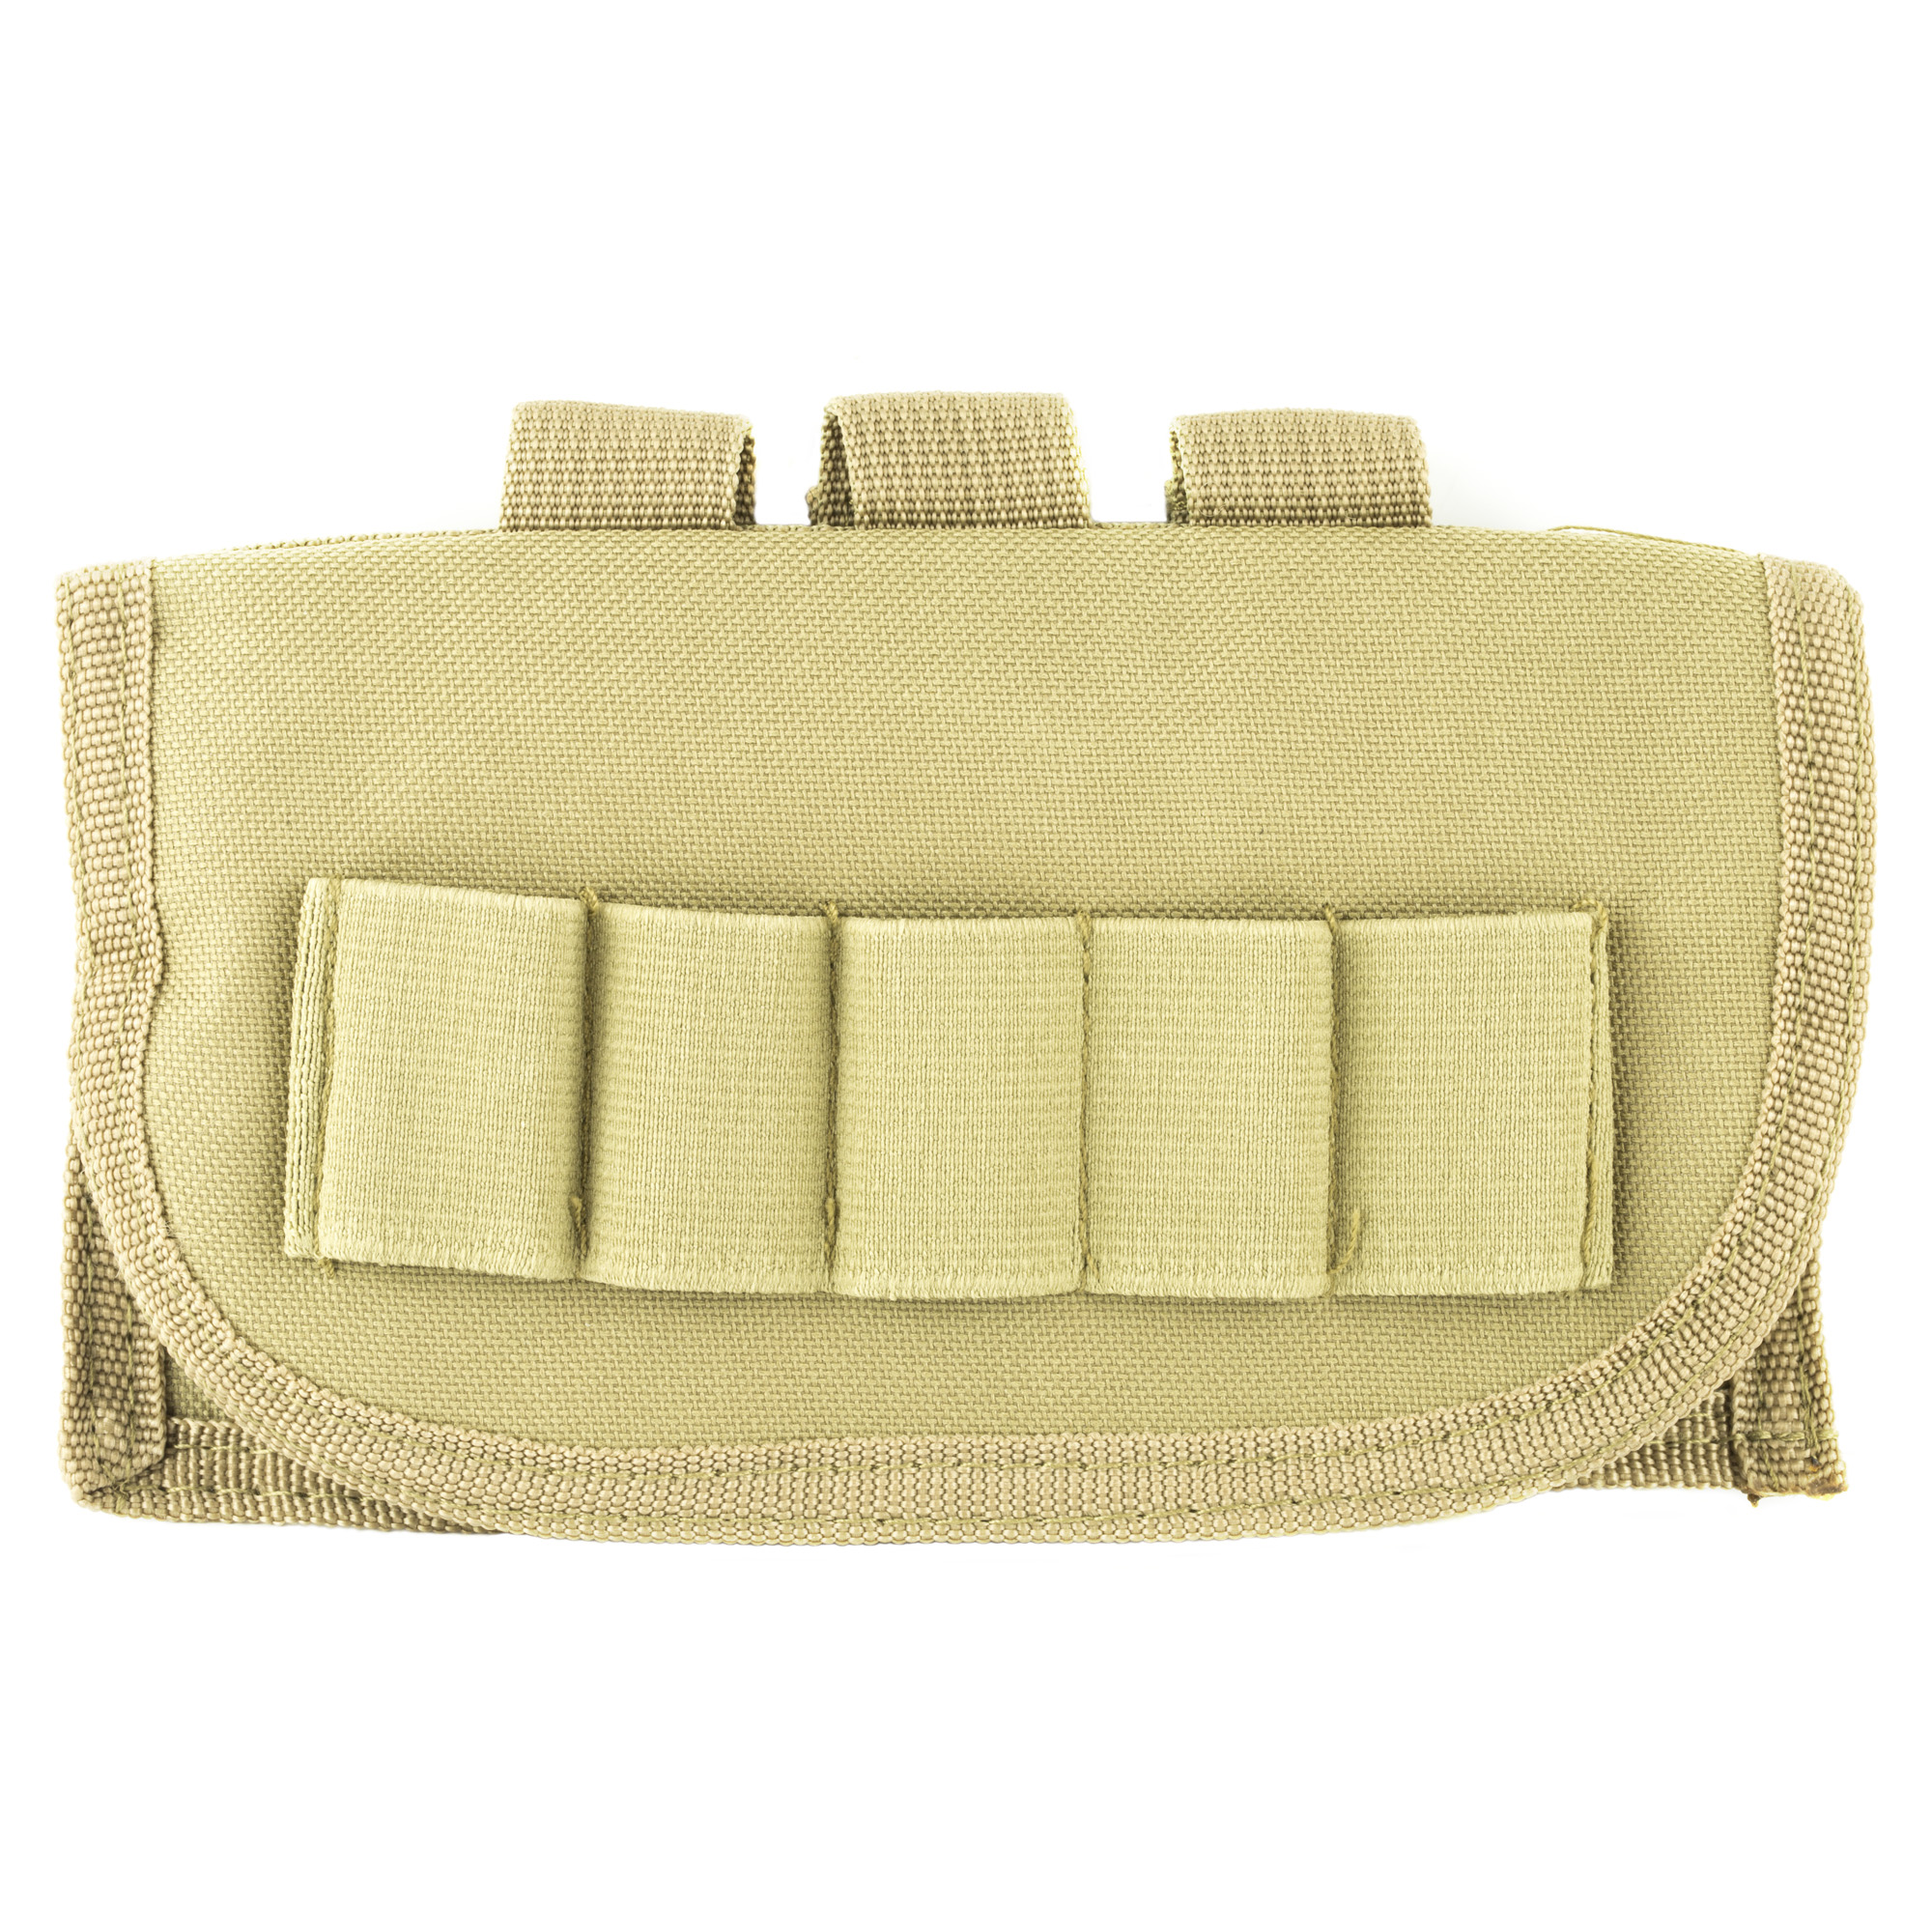 "The Shot Shell Pouch has Elastic Loops to hold a total of 17 Shot Shells. There are 2 rows of 6 Elastic loops inside the Pouch and a single row of 5 Elastic Loops of the front Flap of the Pouch. The Shot Shell Pouch is MOLLE Compatible. The Pouch has three PALS Straps located on the back panel for securing Pouch onto MOLLE webbing. You can attach this Shot Shell Pouch to a: MOLLE Vest"" Shotgun Case"" Shotgun Scabbard"" or any MOLLE compatible gear."